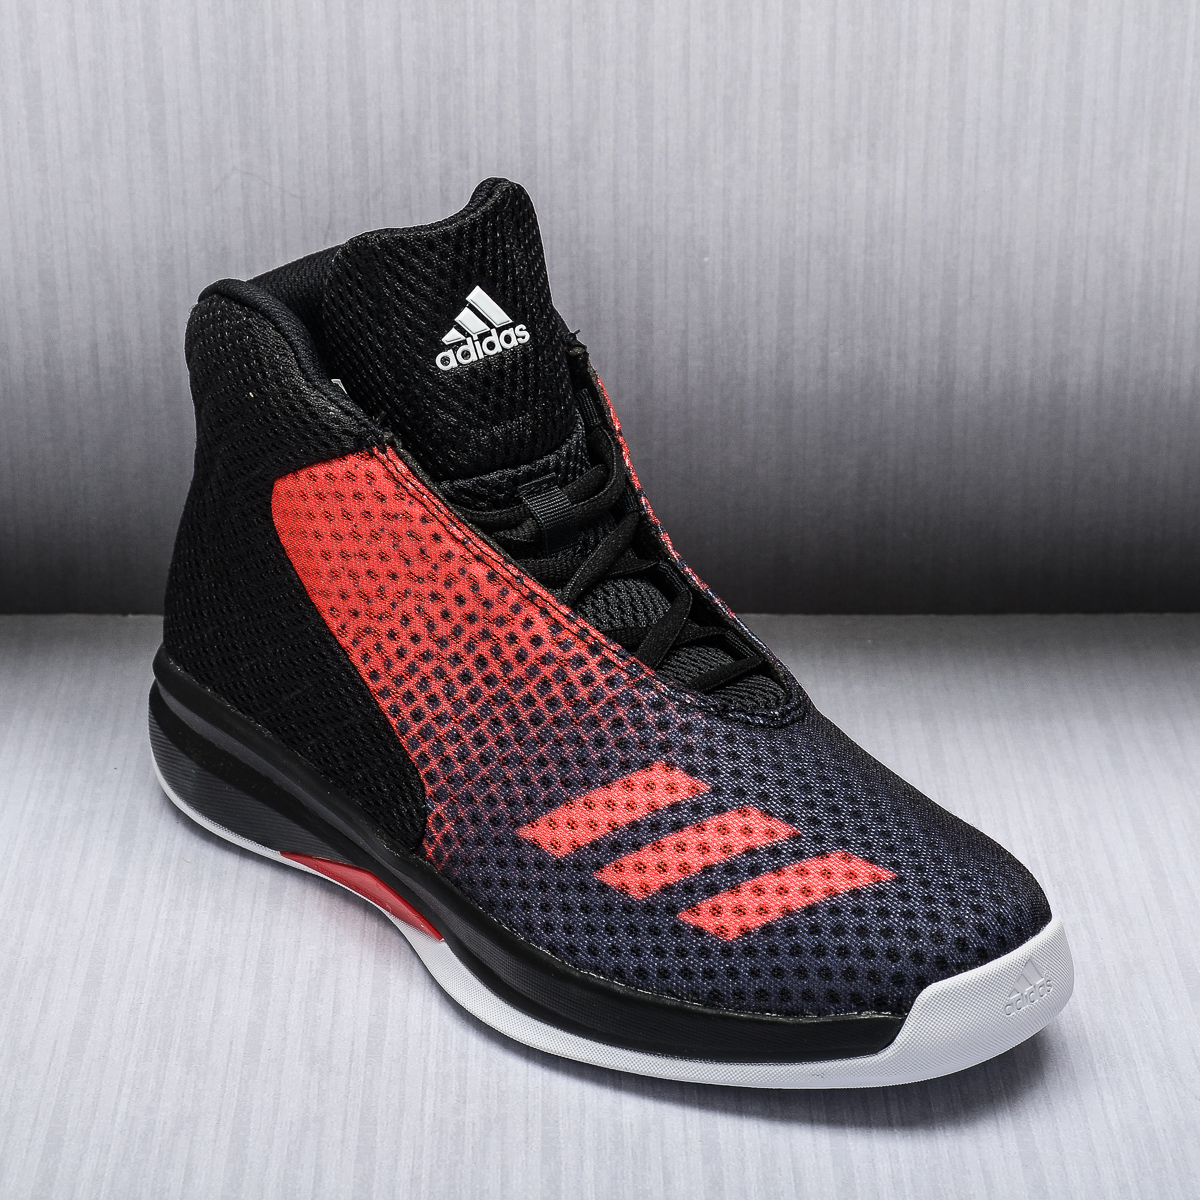 adidas Court Fury 2016 Basketball Shoes - BASKETBALL SHOES ...